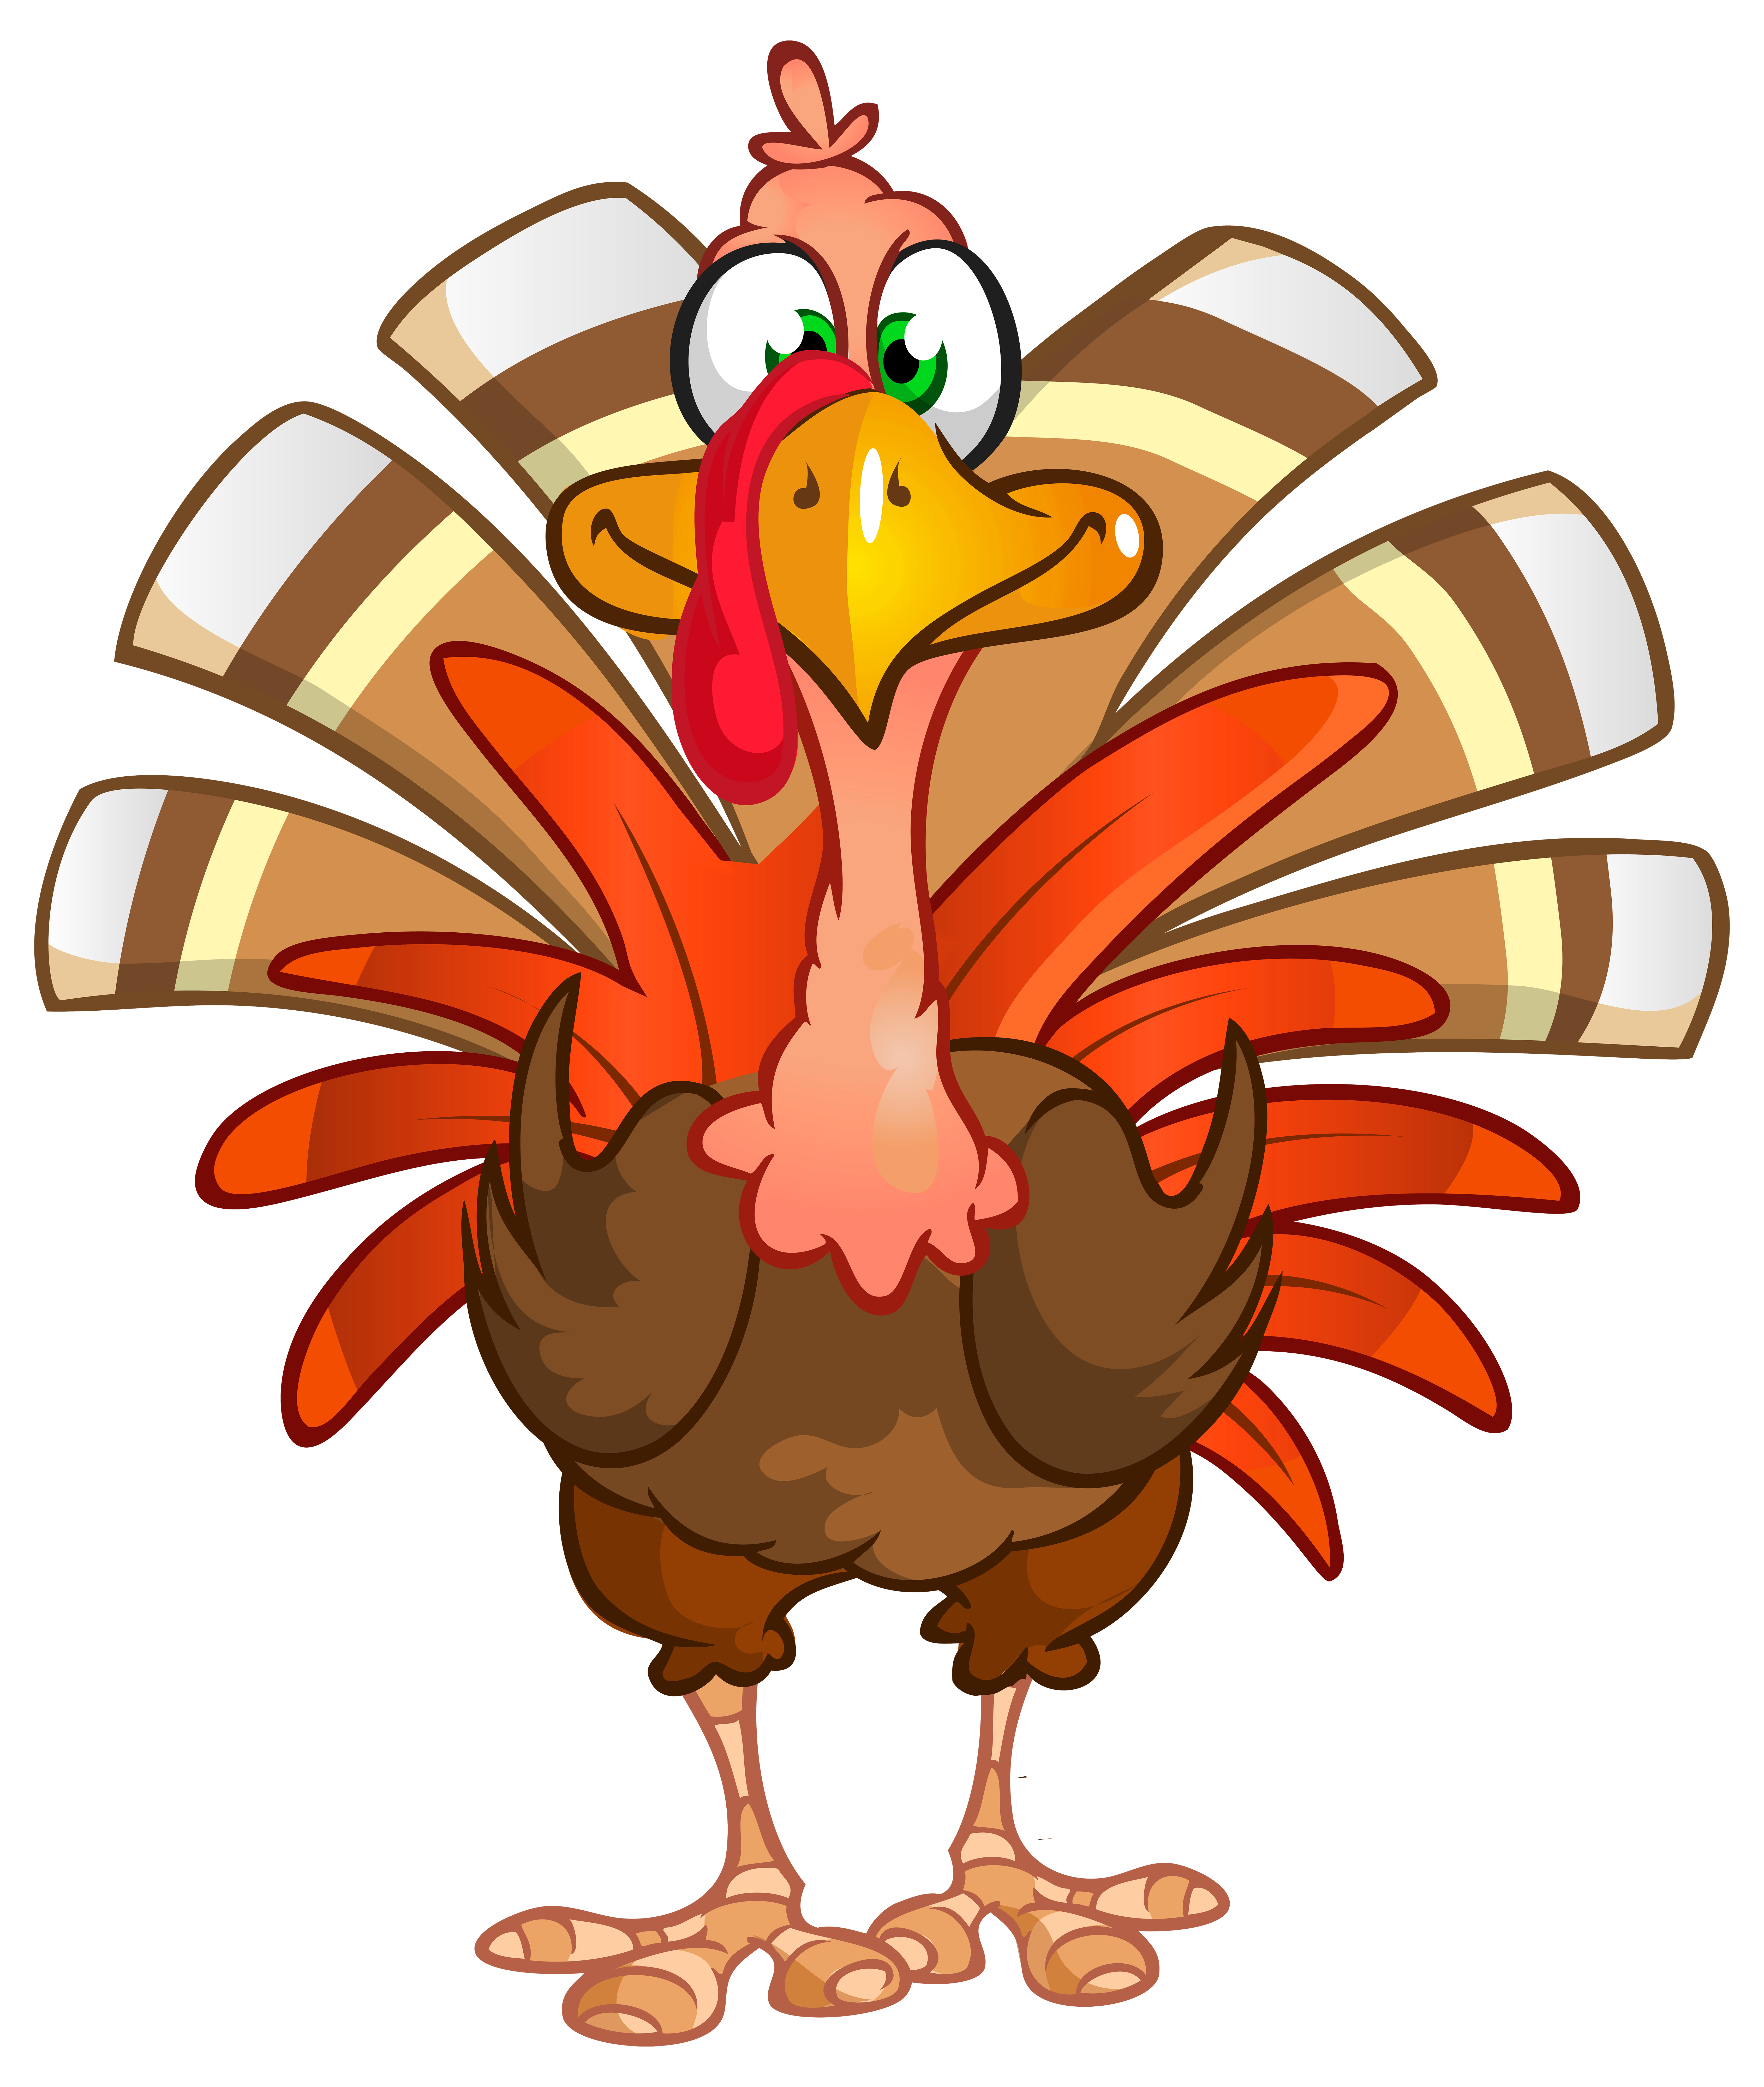 Thanksgiving Turkey Transparent PNG Clip Art Image.